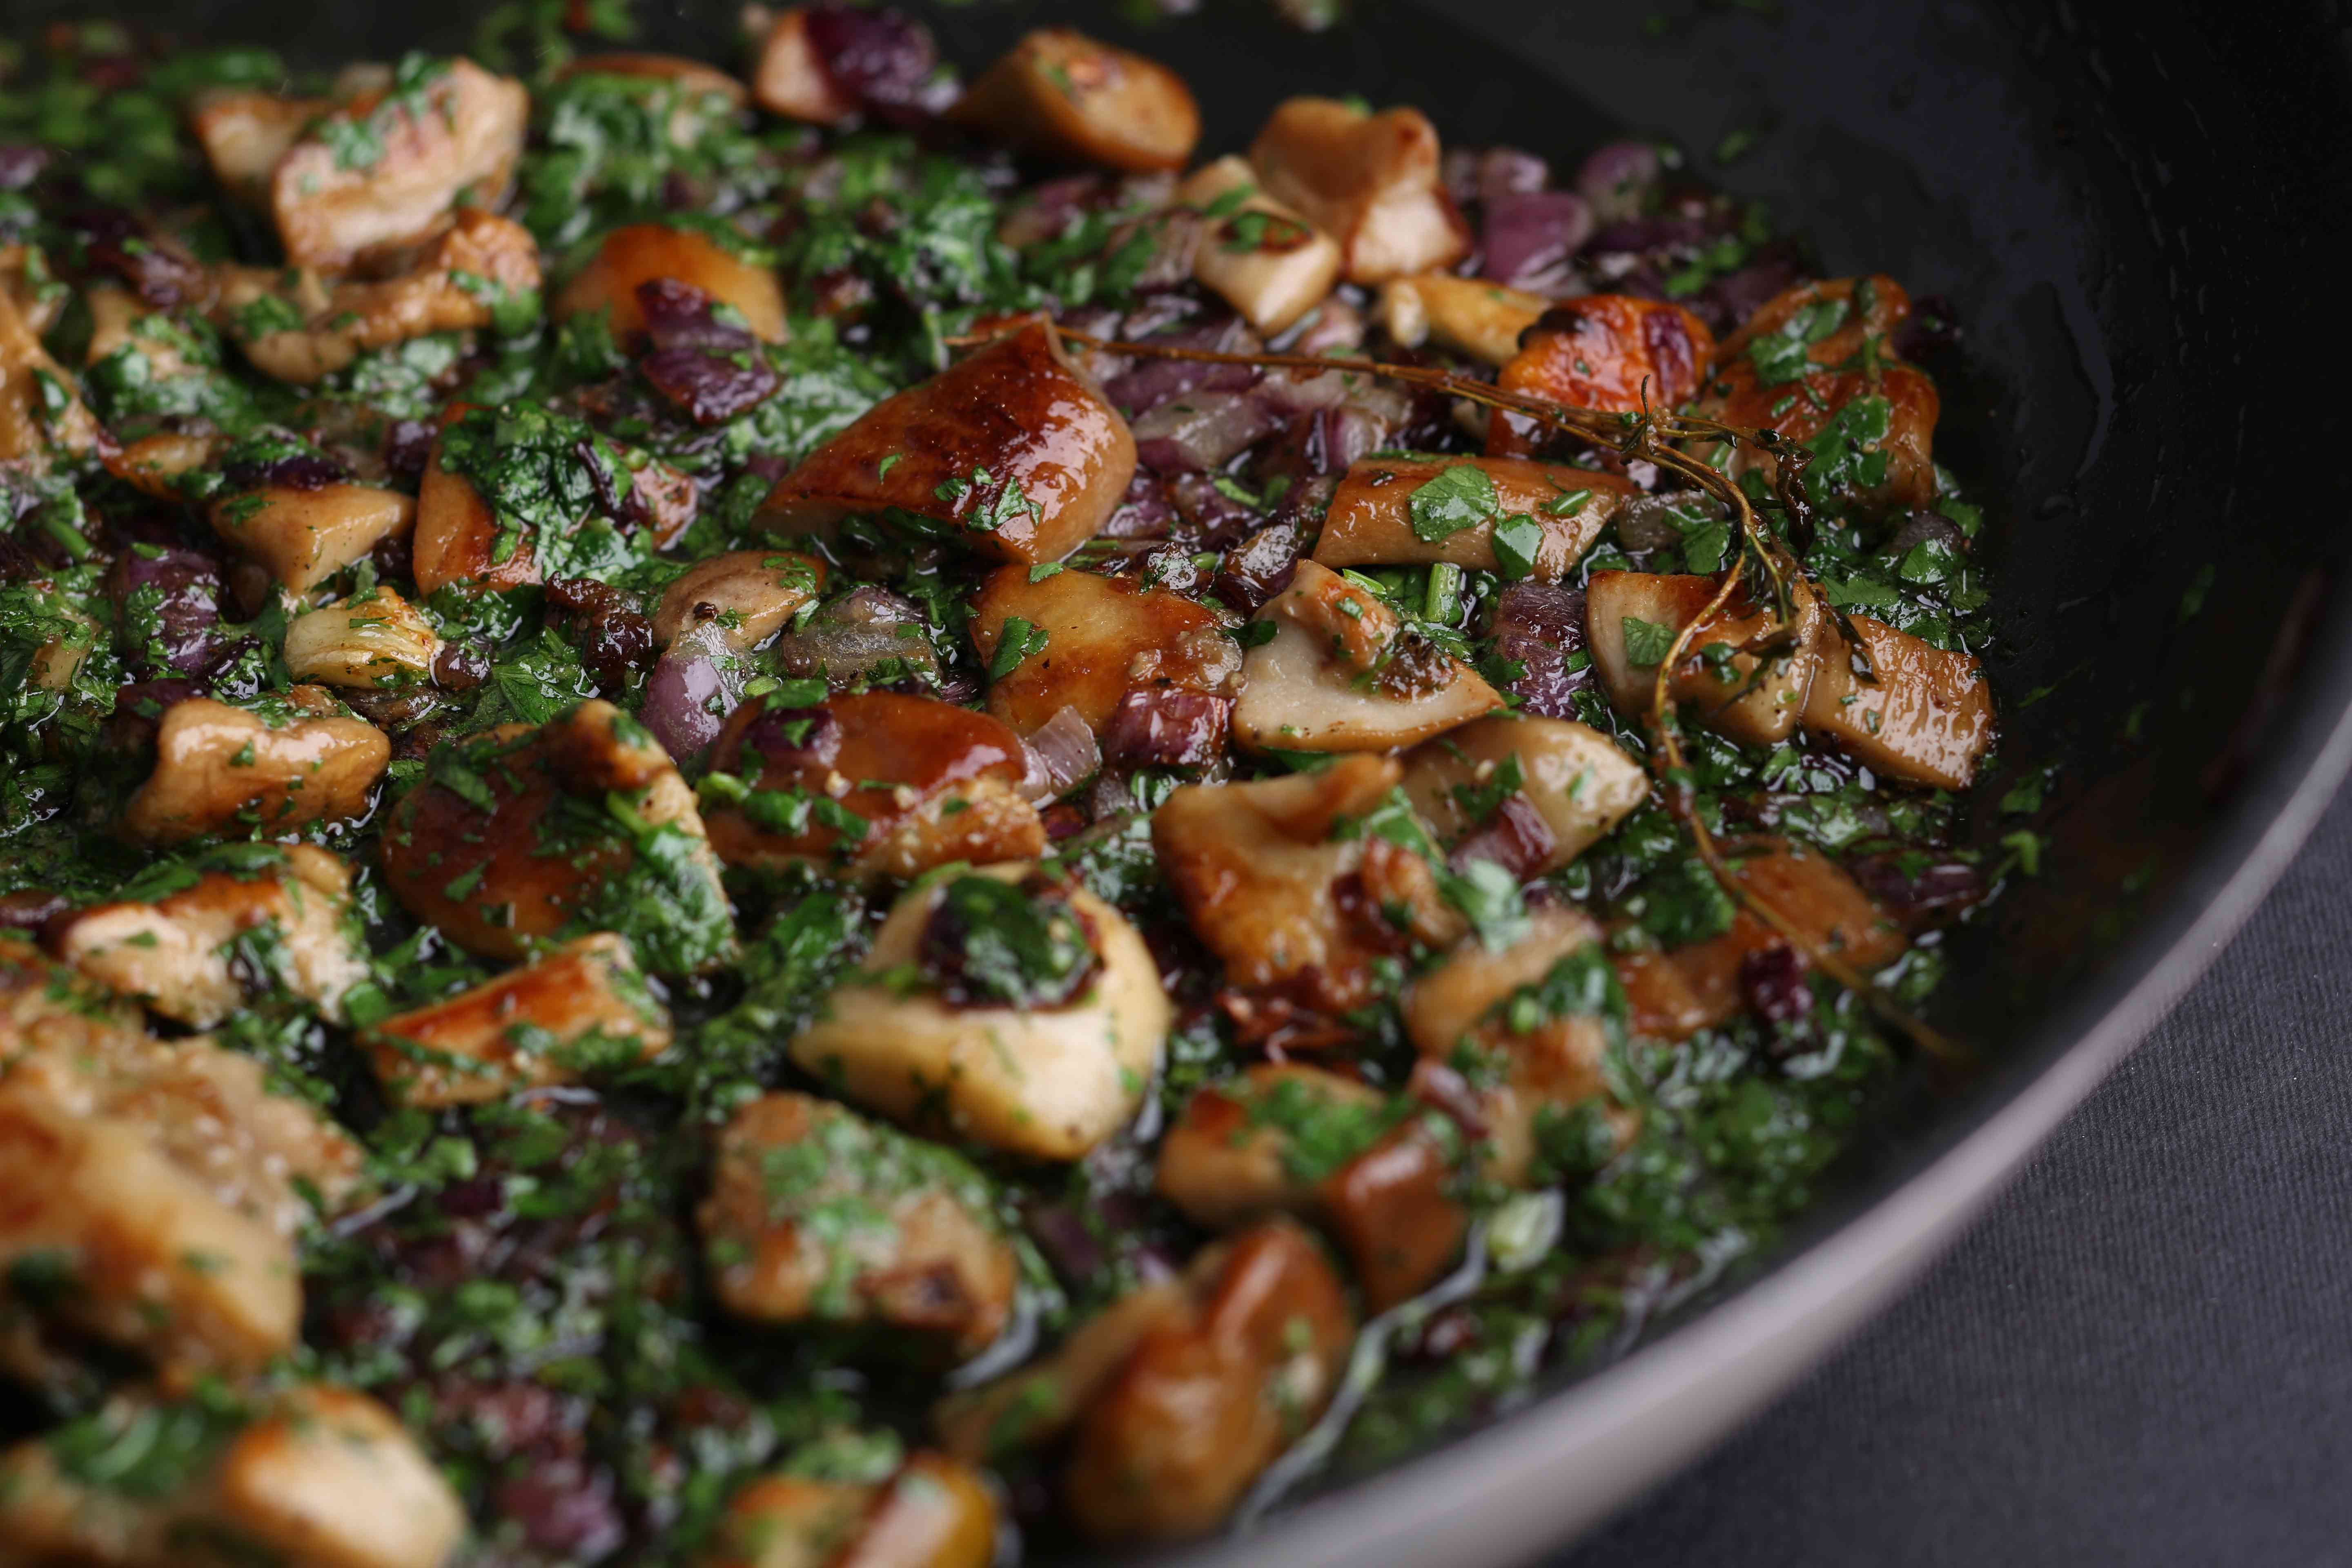 Fried mushrooms with onions and greens in a skillet on